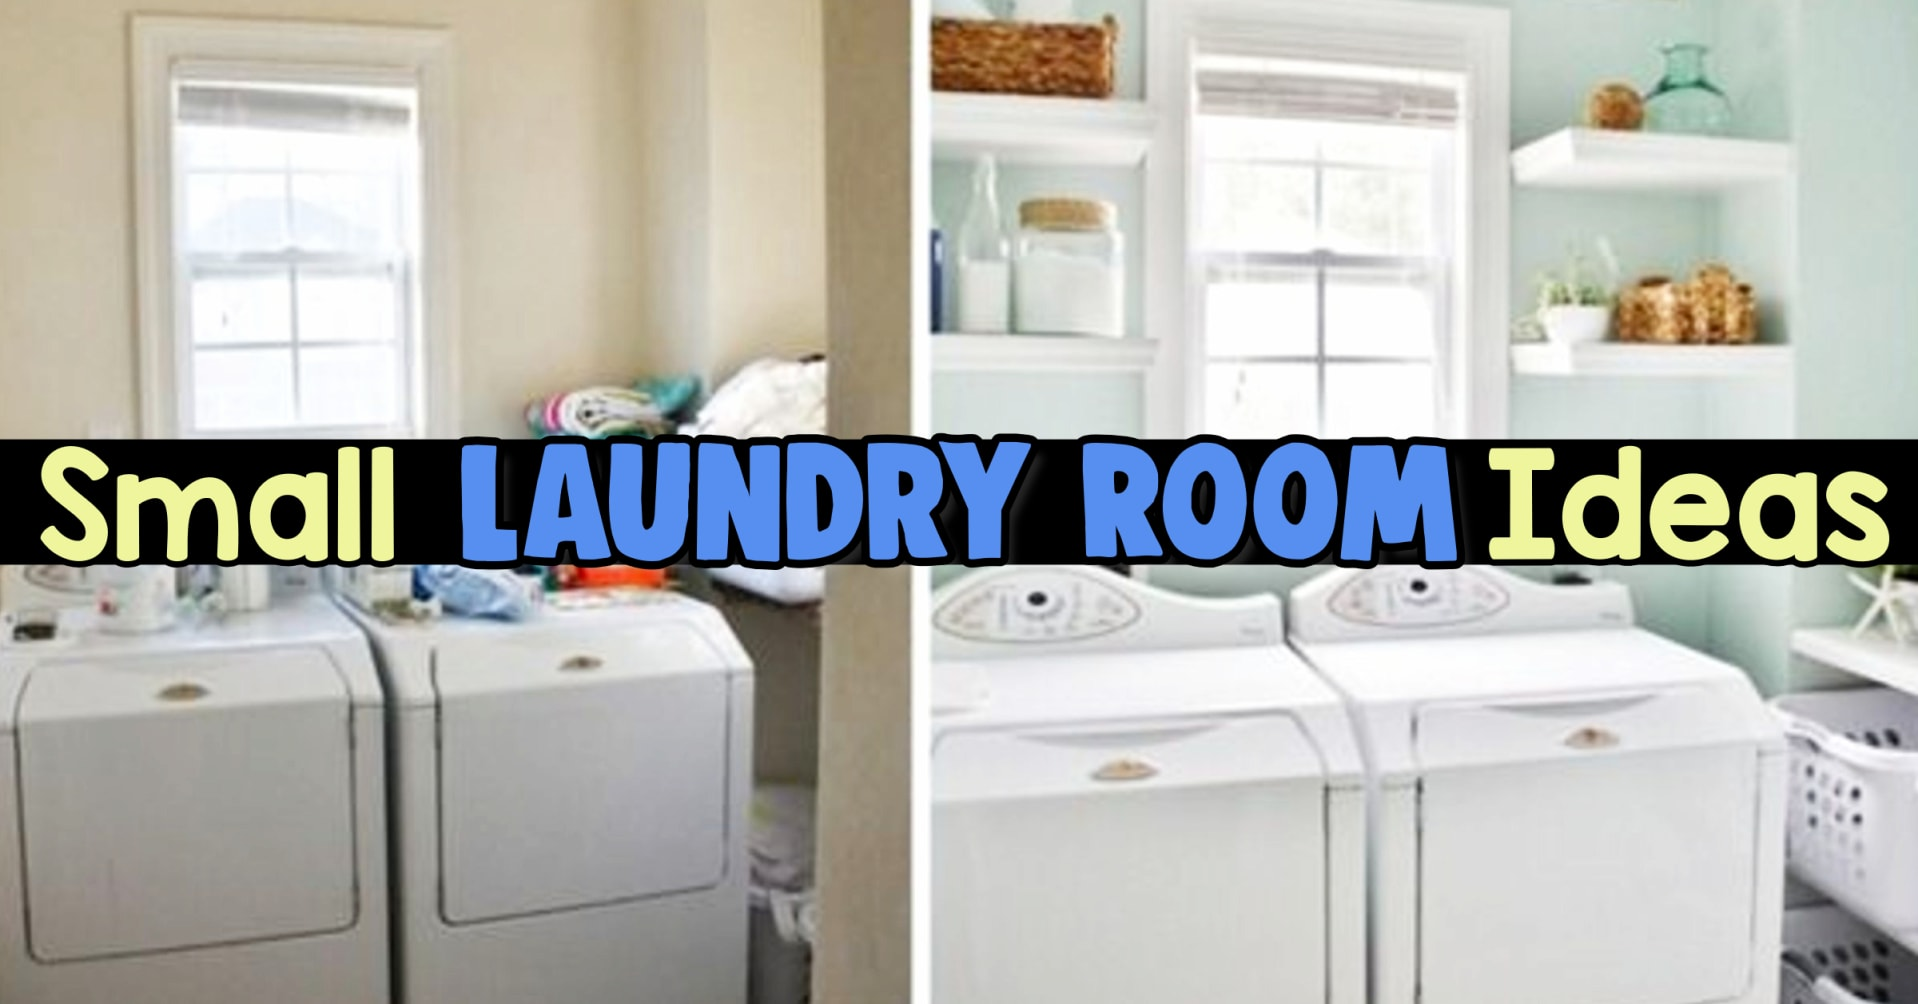 Laundry Room Ideas! Small laundry room ideas and tiny laundry room pictures - simple laundry room design, small space laundry room design and more laundry room ideas on a budget